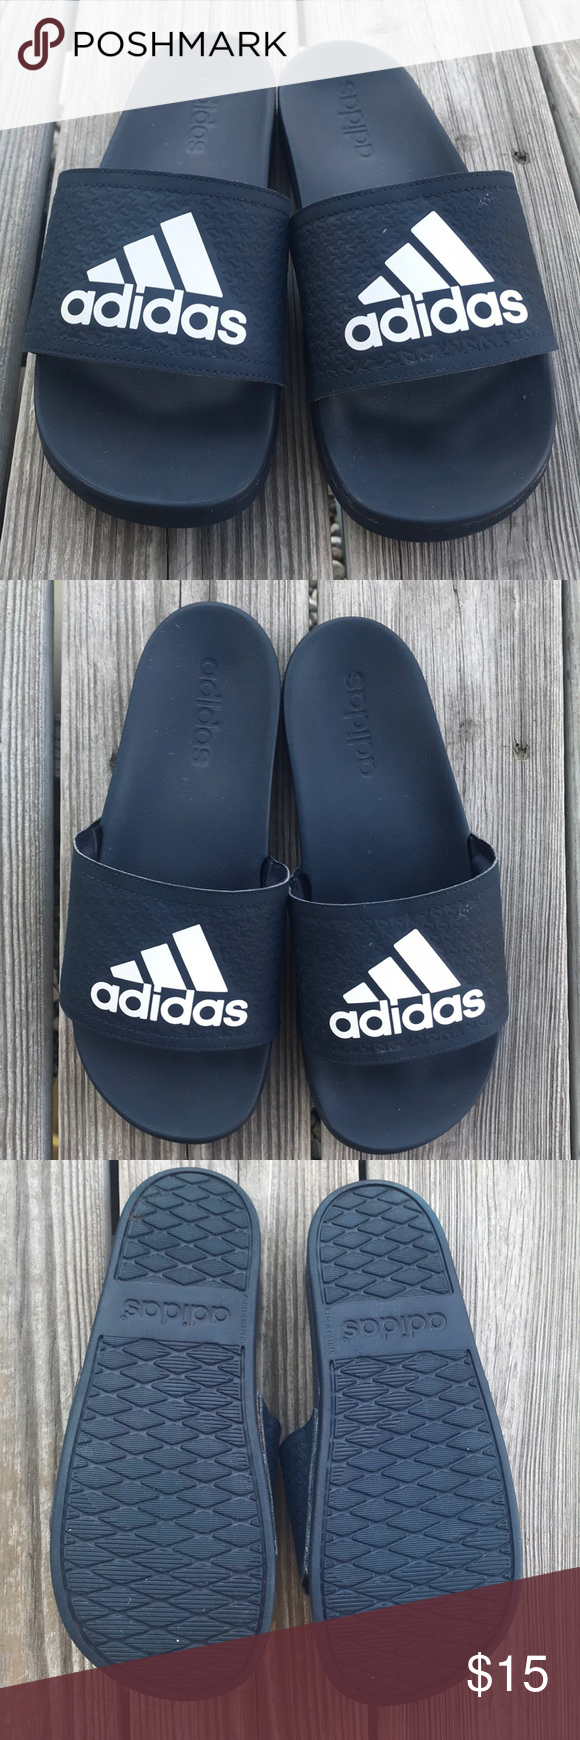 7ef45e85a9962 Adidas Slides Adidas Cloudfoam LogoSlides Rubber with cushioned foams upper  strap adidas Shoes Sandals